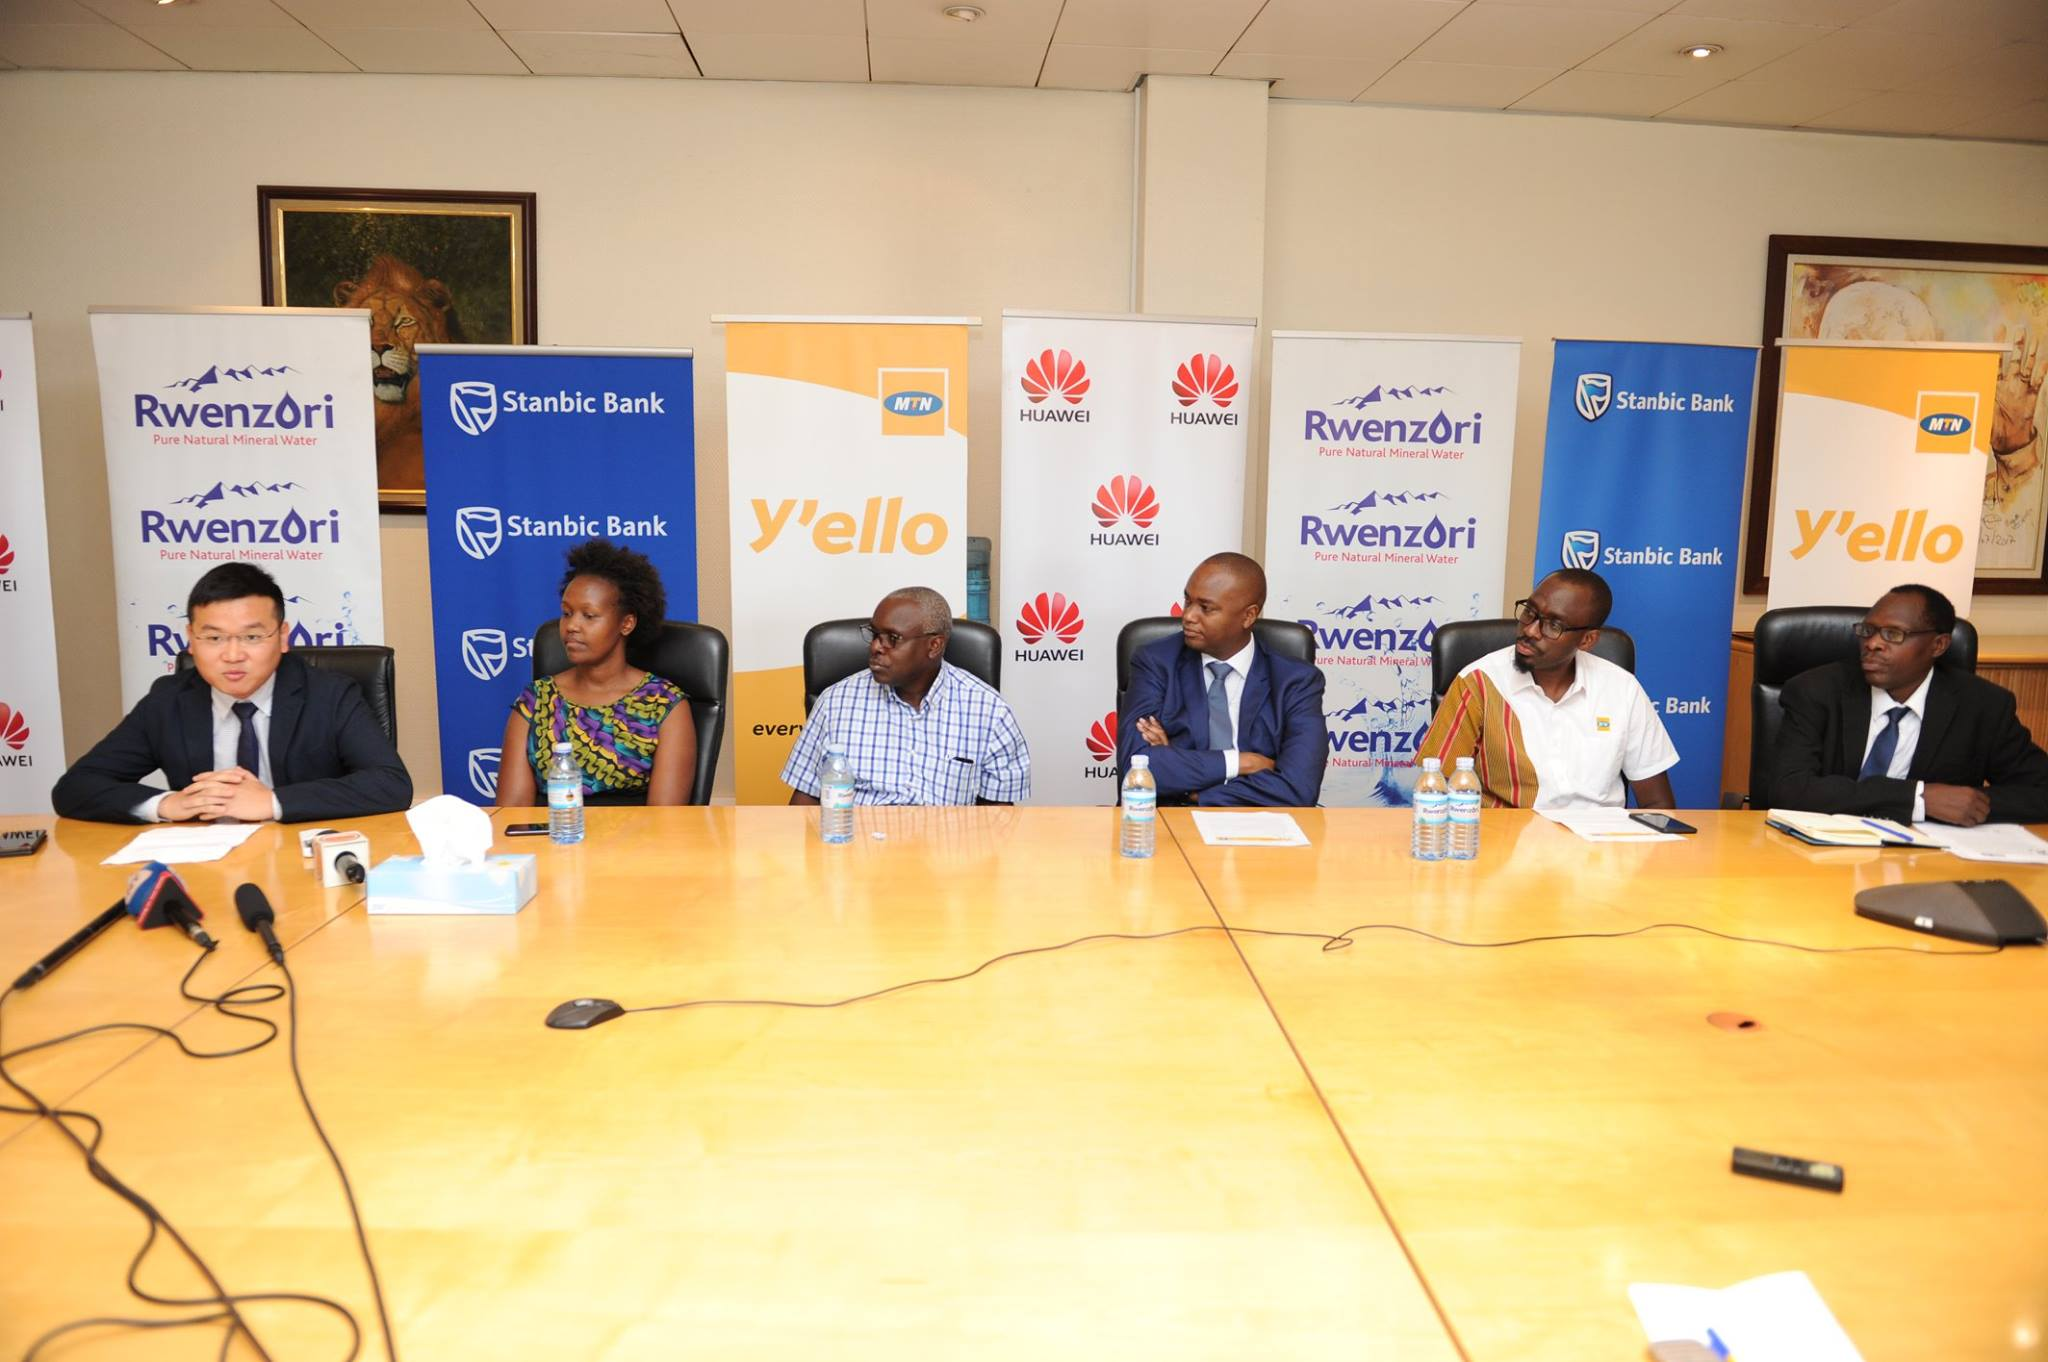 MTN Marathon partners briefing the media at a press conference held at Stanbic Uganda HQ at Crested Towers in Kampala on Thursday 14th, February 2018 - how the 2018 proceedings while be used towards improving Maternal Health Care in Uganda to ensure safe childbirth, for expectant mothers.